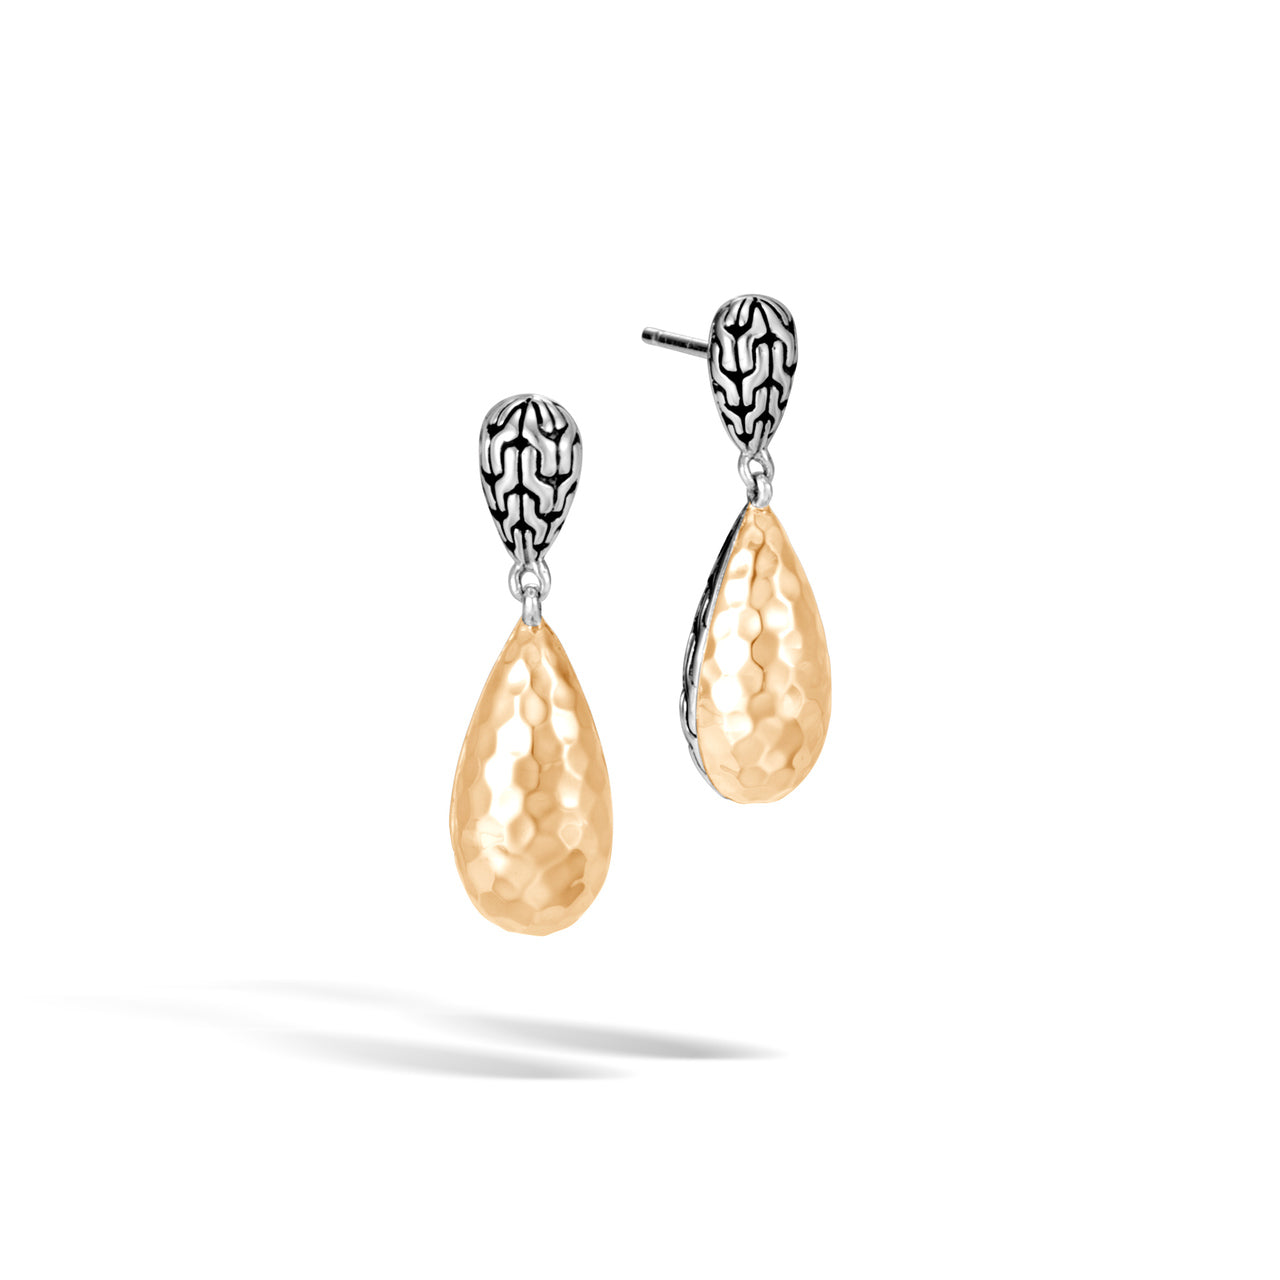 John Hardy Classic Chain Sterling Silver and Yellow Gold Drop Earrings